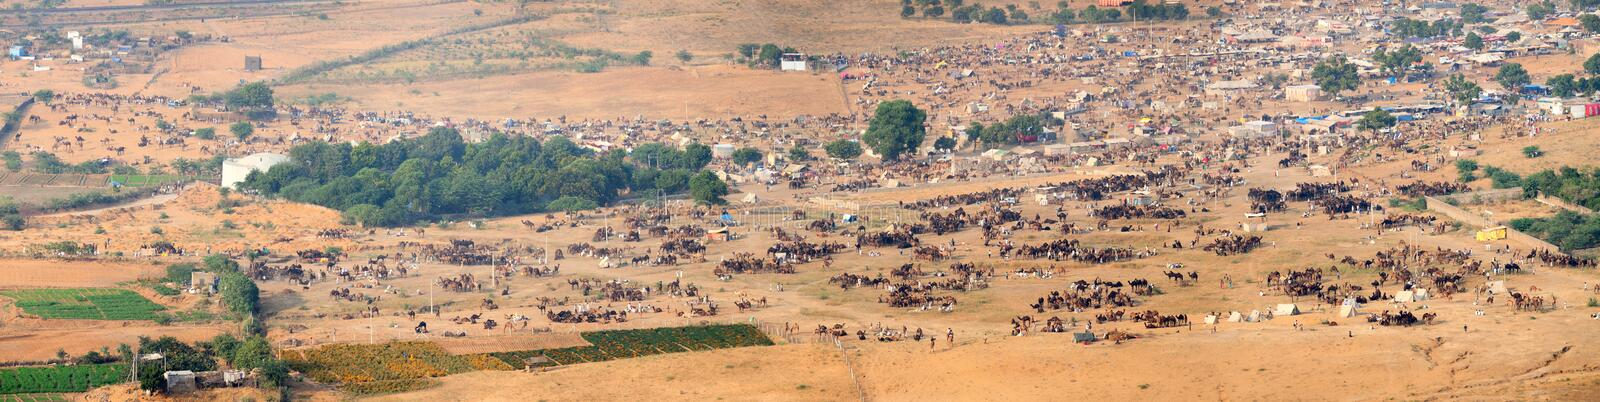 Thousands of Camels and Other Livestock at Pushkar Camel Fair in stock photo